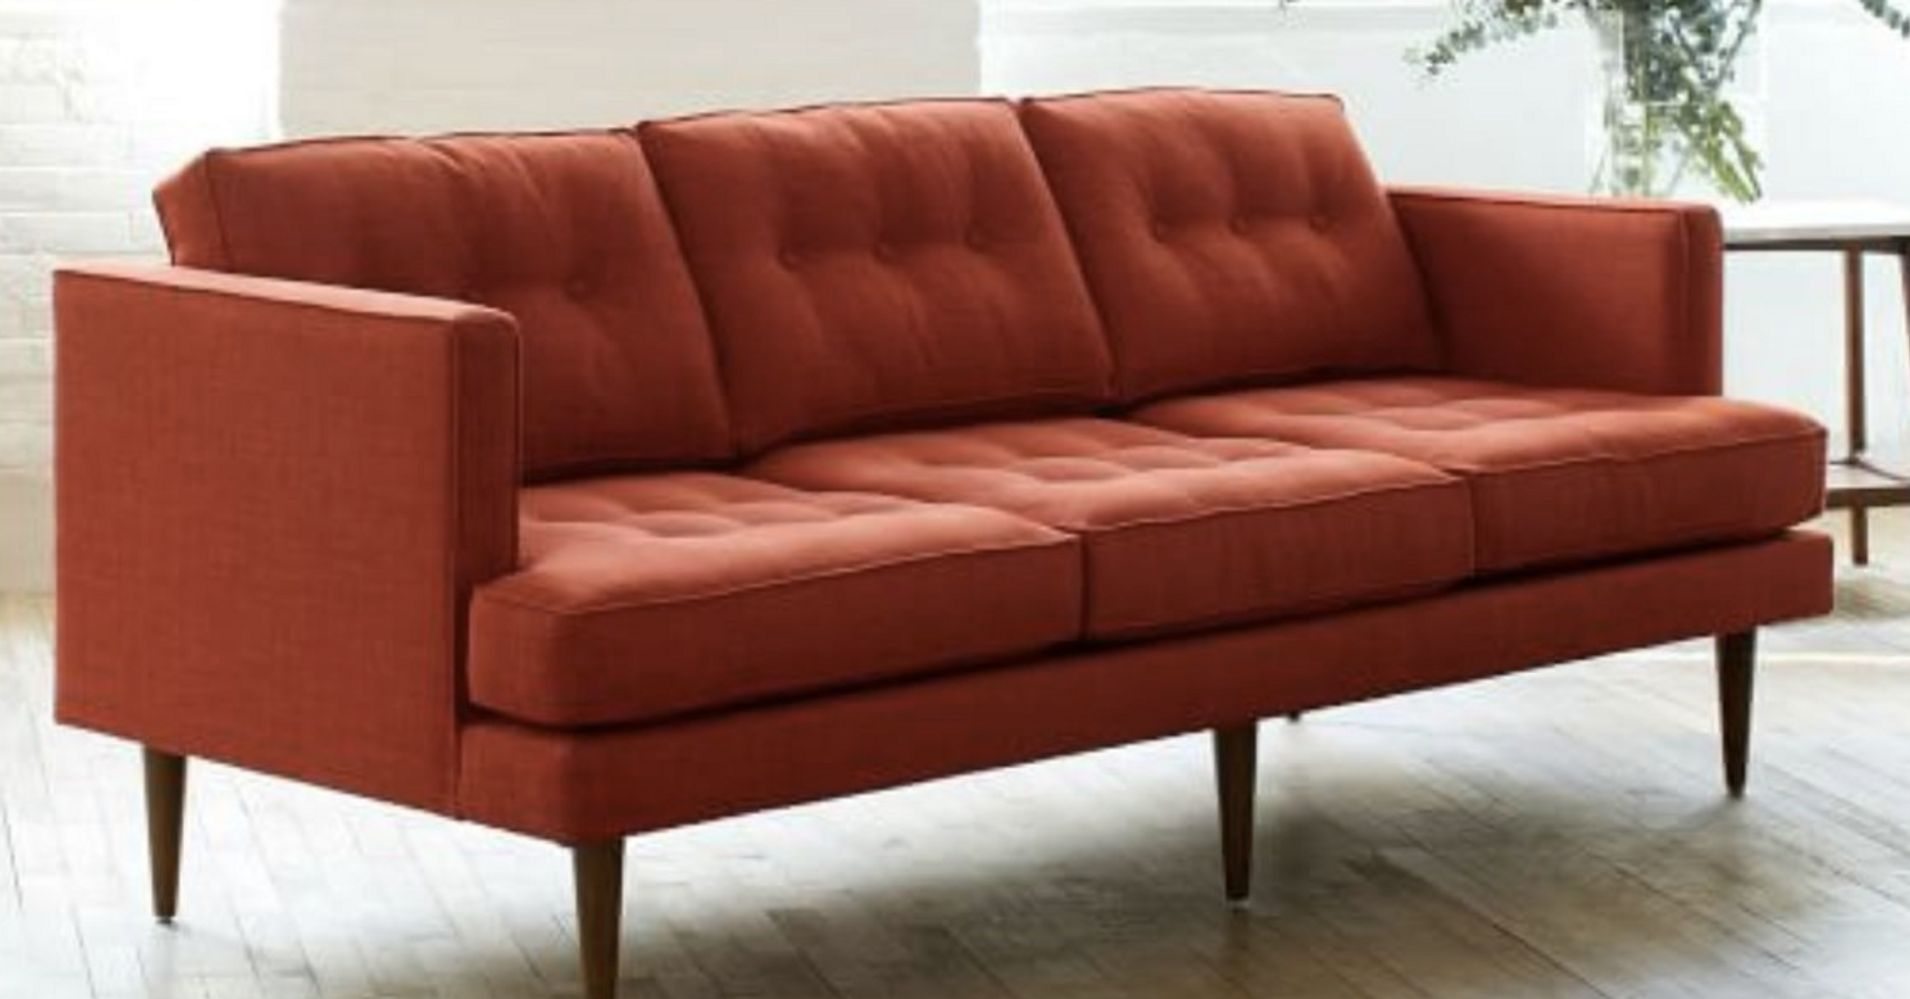 A writer shamed this couch so hard west elm is offering refunds a writer shamed this couch so hard west elm is offering refunds updated huffpost parisarafo Choice Image